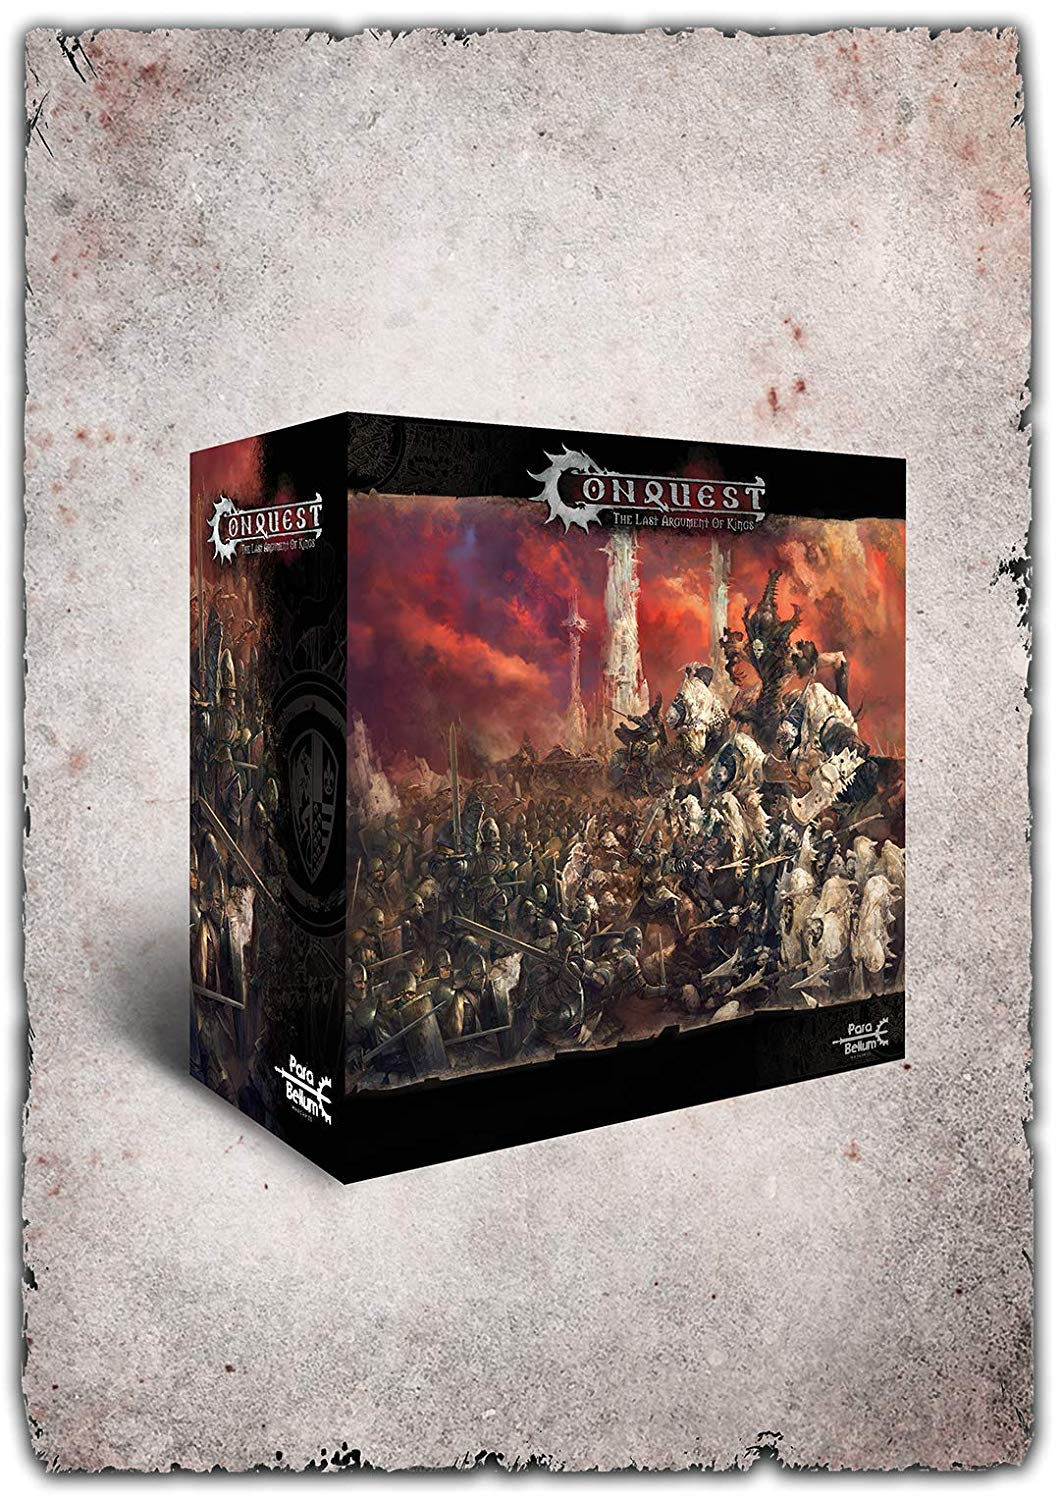 Conquest: The Last Argument of Kings - Core Box Set